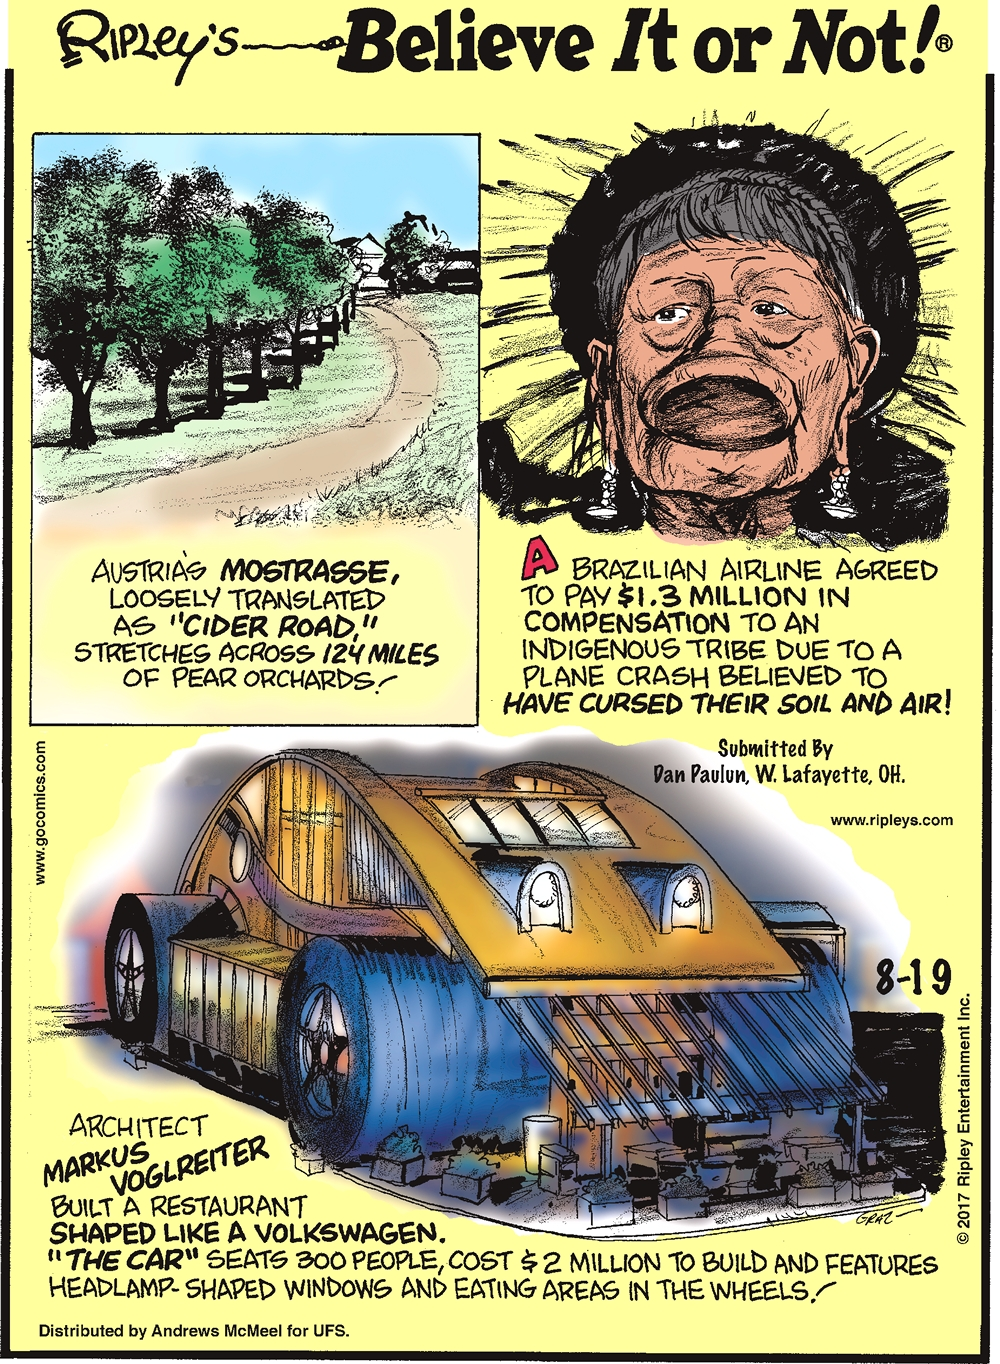 """Austria's Mostrasse, loosely translated as """"Cider Road,"""" stretches across 124 miles of pear orchards!-------------------- A Brazilian airline agreed to pay $1.3 million in compensation to an indigenous tribe due to a plane crash believed to have cursed their soil and air! Submitted by Dan Paulun, W. Lafayette, OH.-------------------- Architect Markus Voglreiter built a restaurant shaped like a Volkswagen. """"The Car"""" seats 300 people, cost $2 million to build and features headlamp-shaped windows and eating areas in the wheels!"""